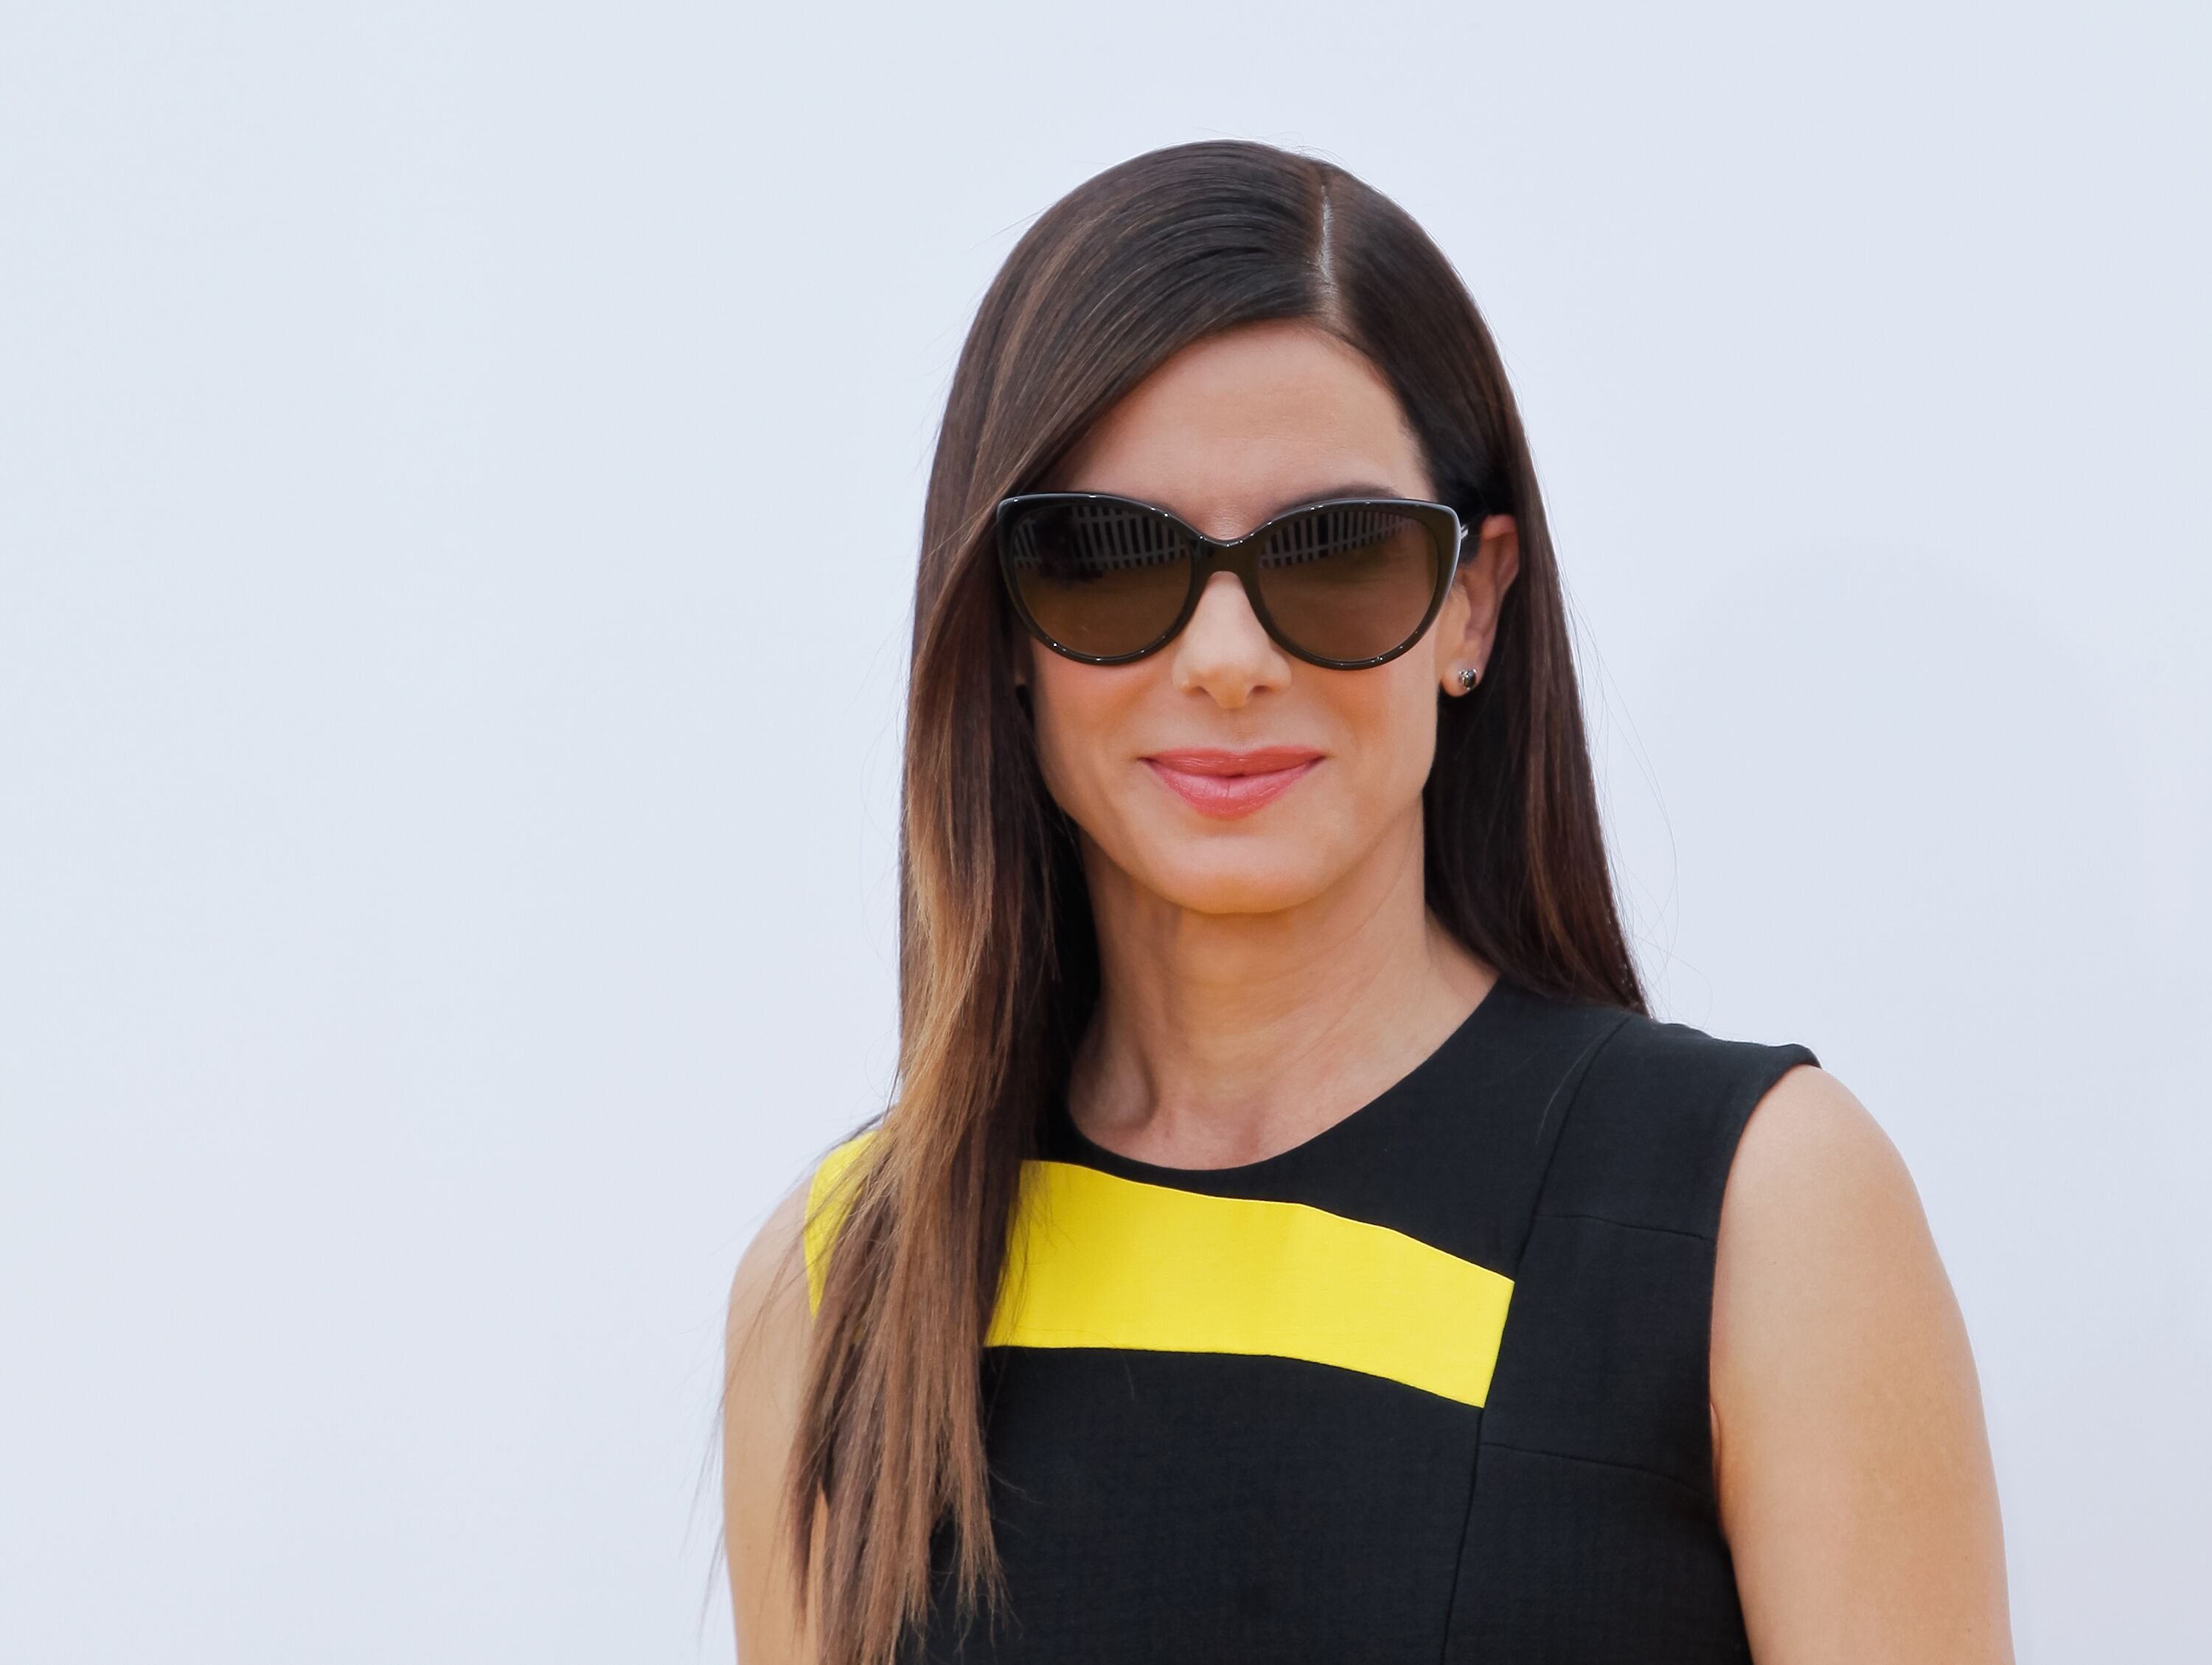 Sandra Bullock attends the Premiere of 'Minions' at The Shrine Auditorium | Photo: Getty Images